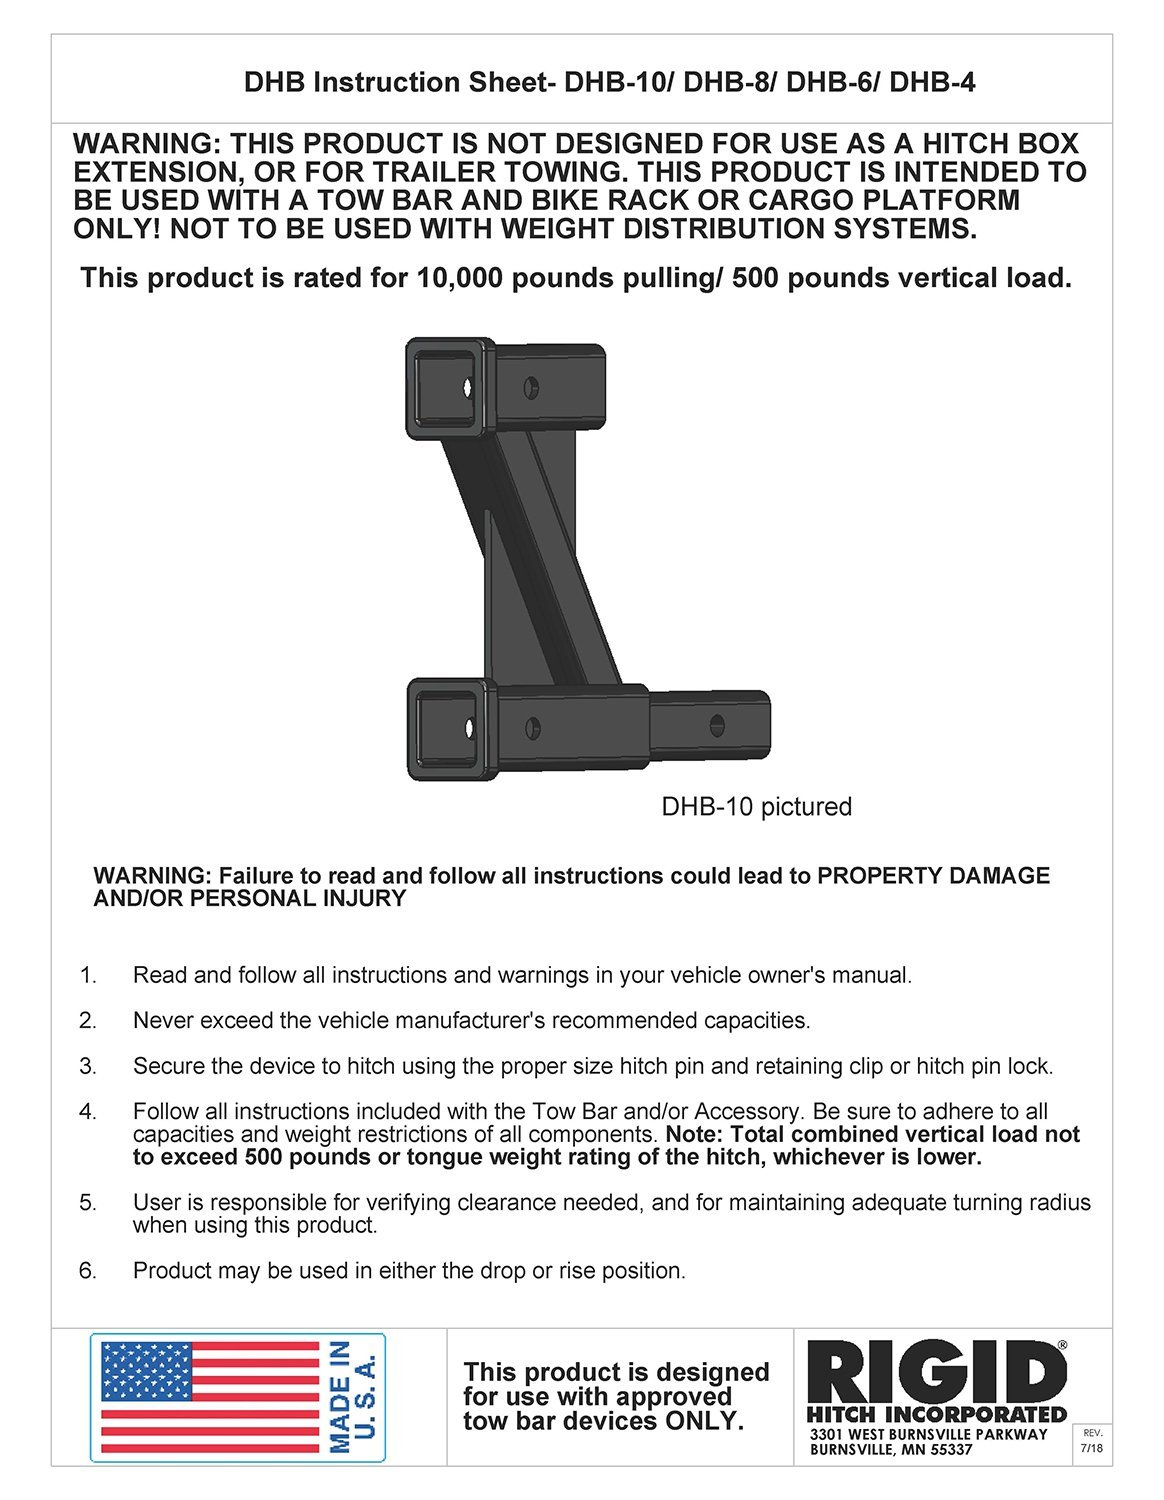 Rigid Hitch Tow Bar And Accessory Receiver - 8 Inch Drop/Rise (DHB-8) - Made In U.S.A.